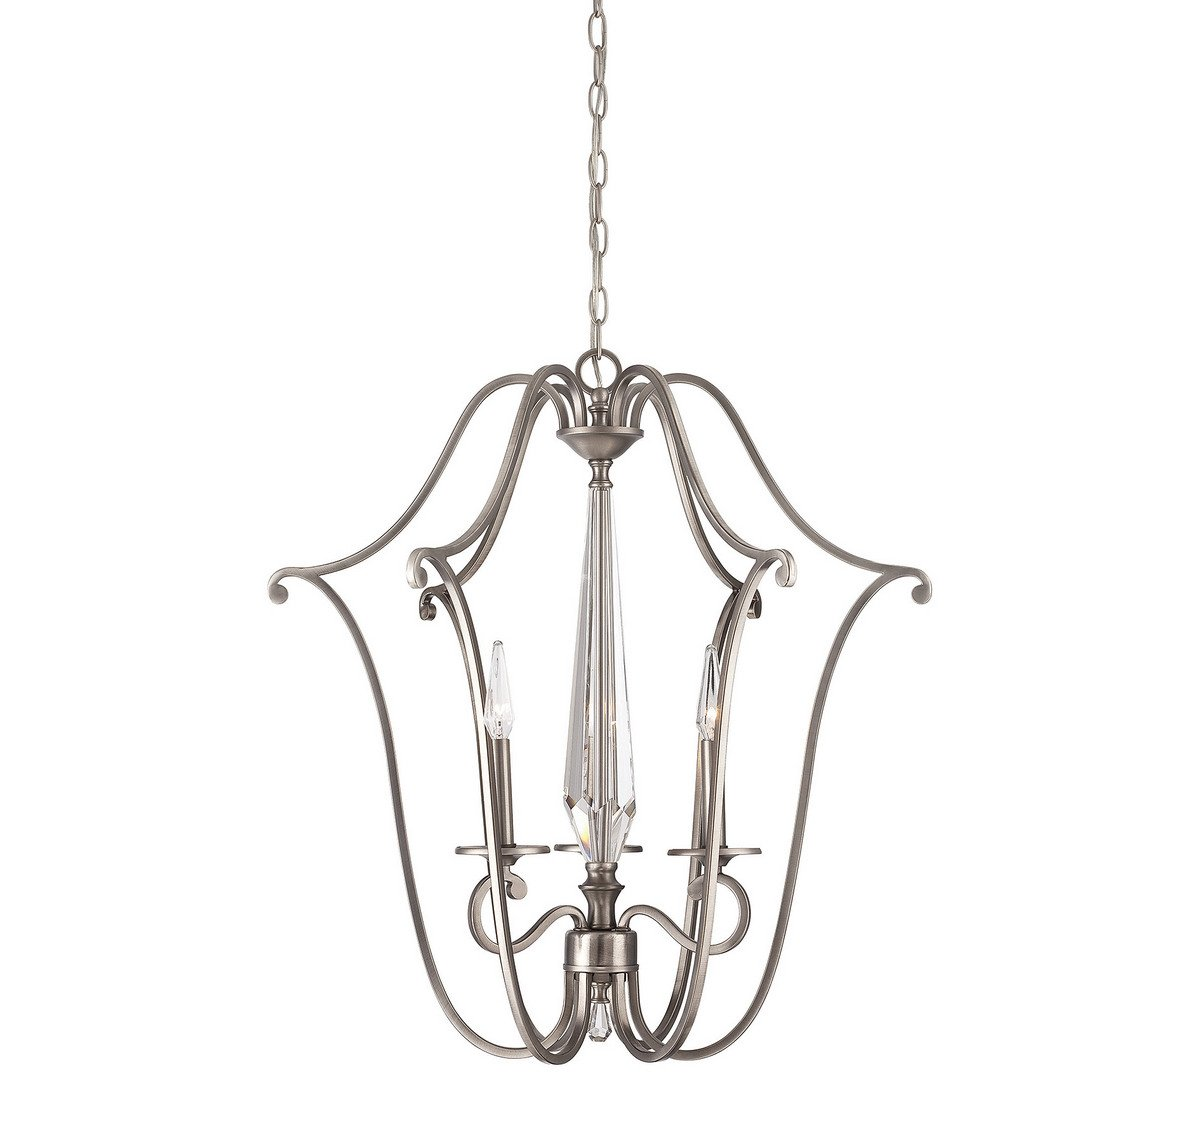 Savoy House 3-382-3-43 Kendall 3 Light Foyer in Vintage Nickel by Savoy House